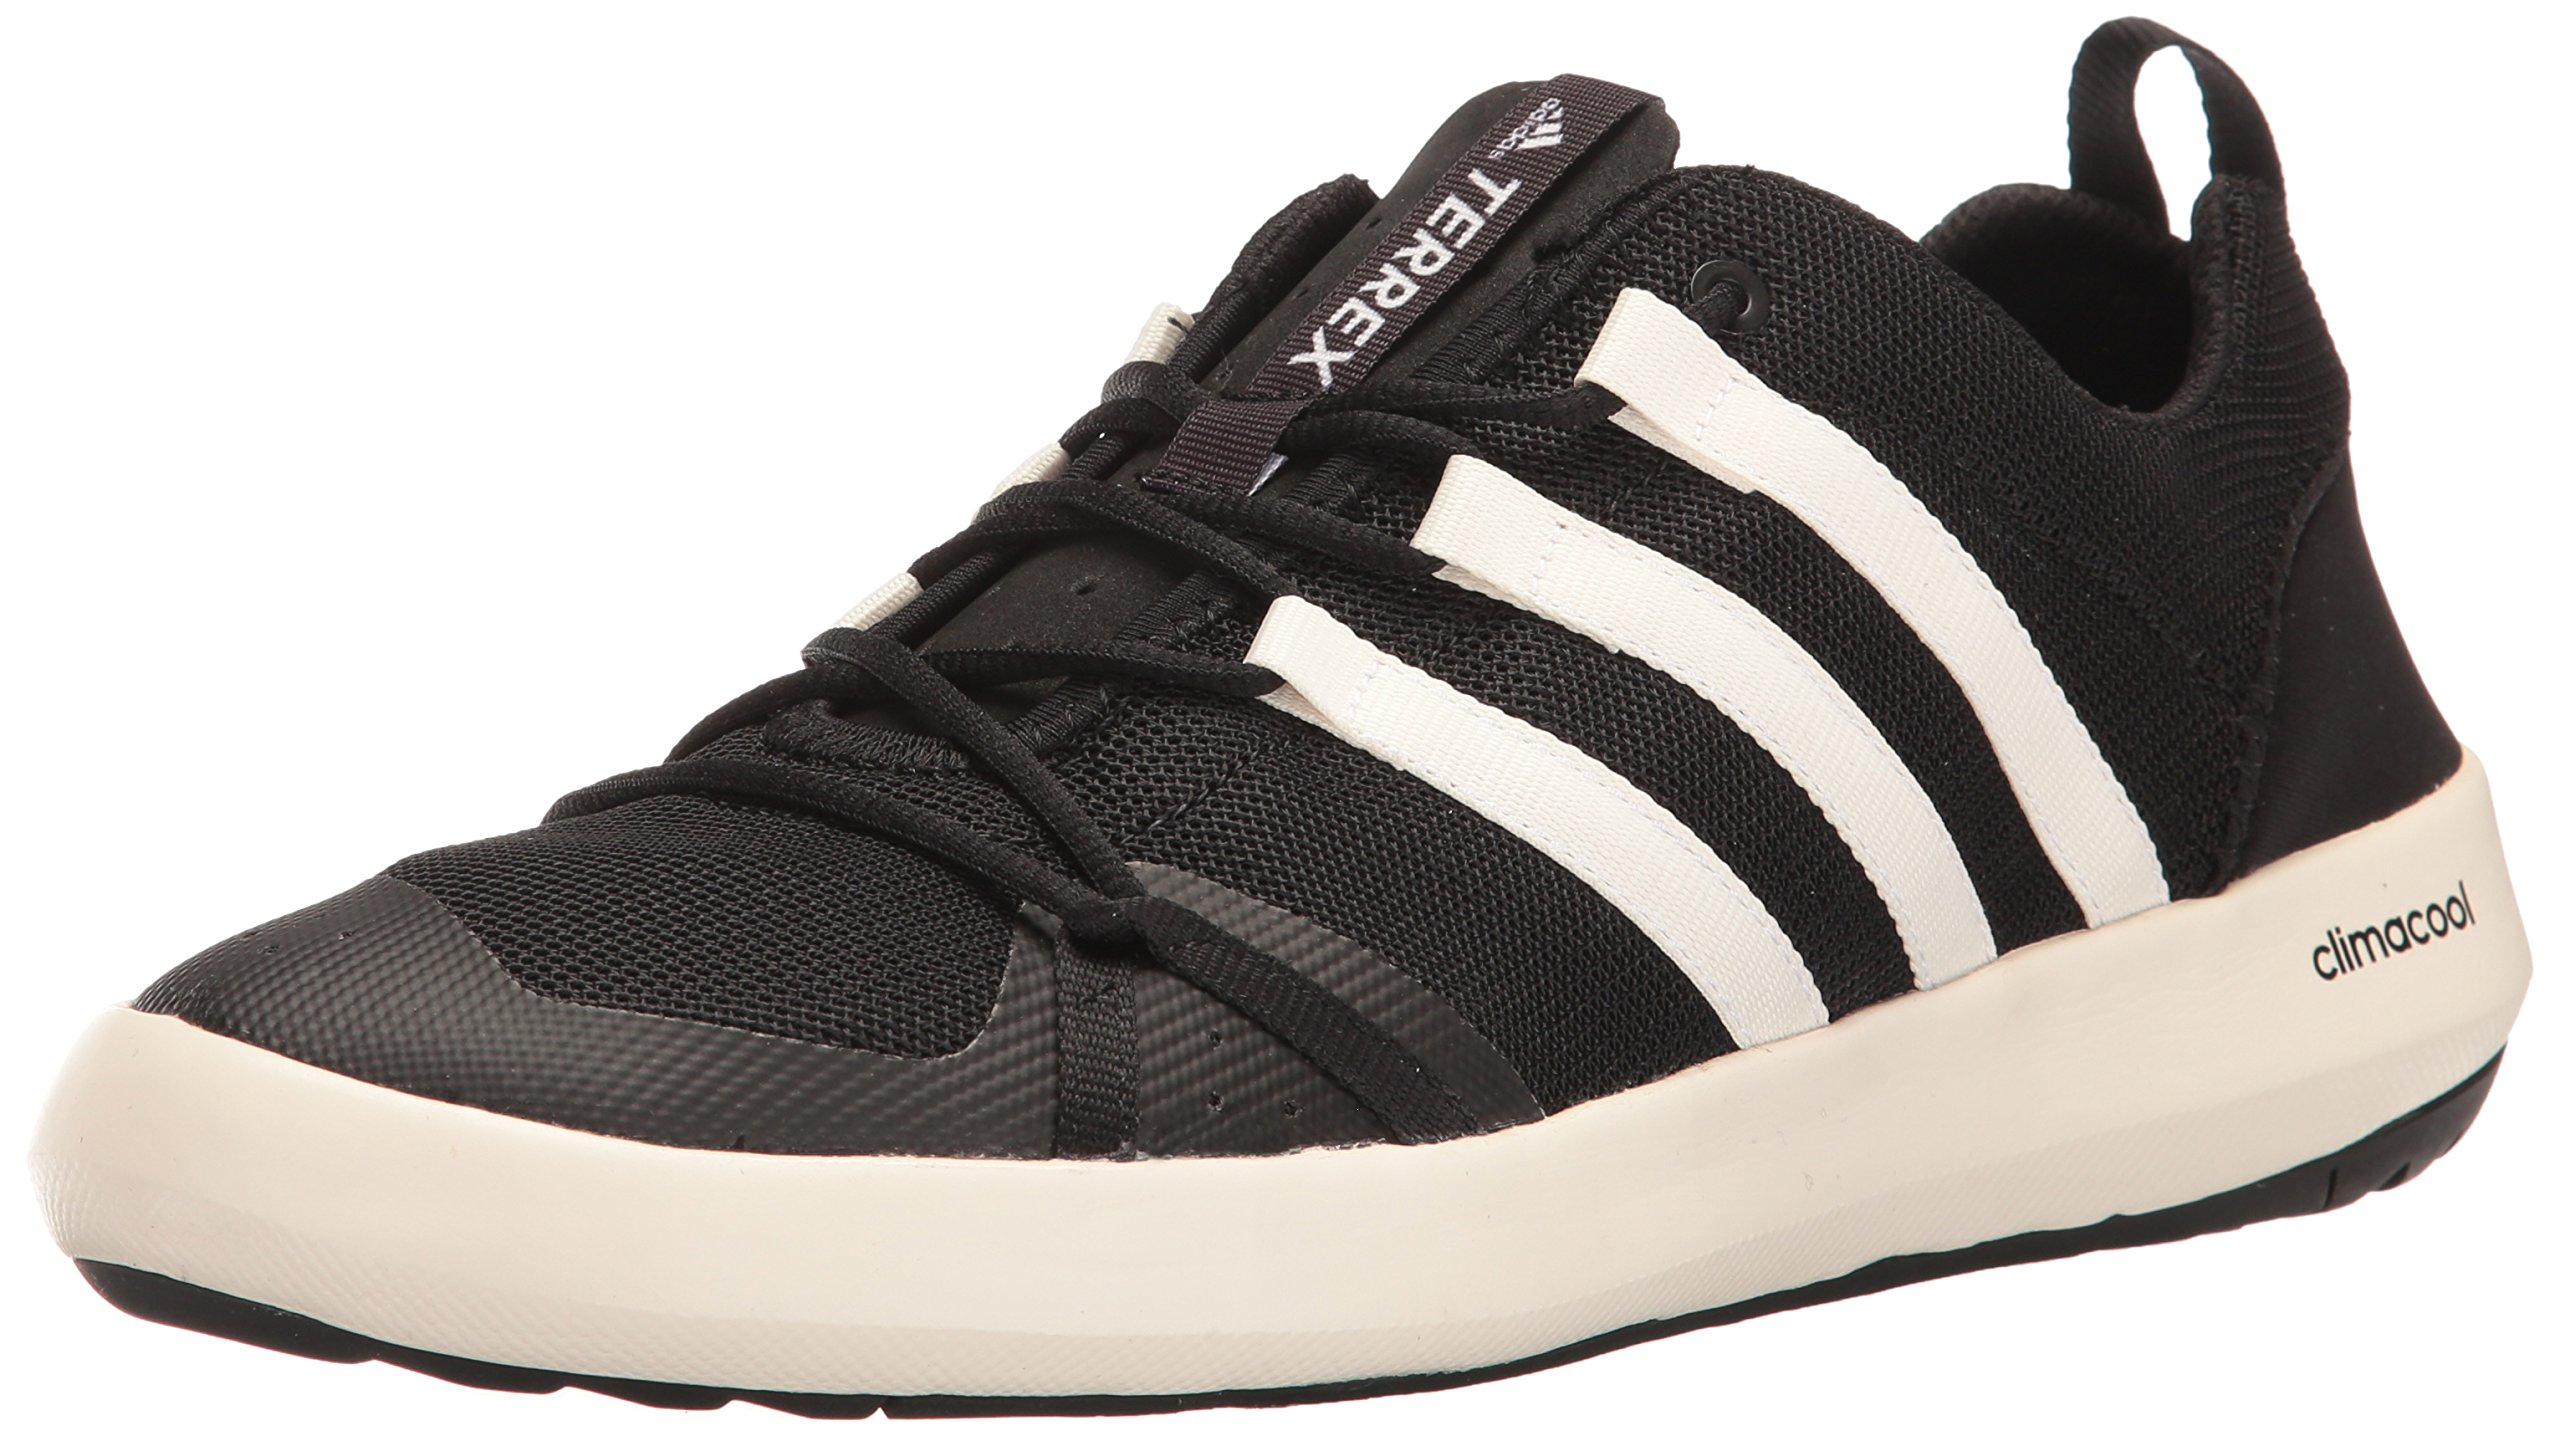 adidas outdoor Men's Terrex Climacool Boat Water Shoe, Chalk White/Black, 10.5 M US by adidas outdoor